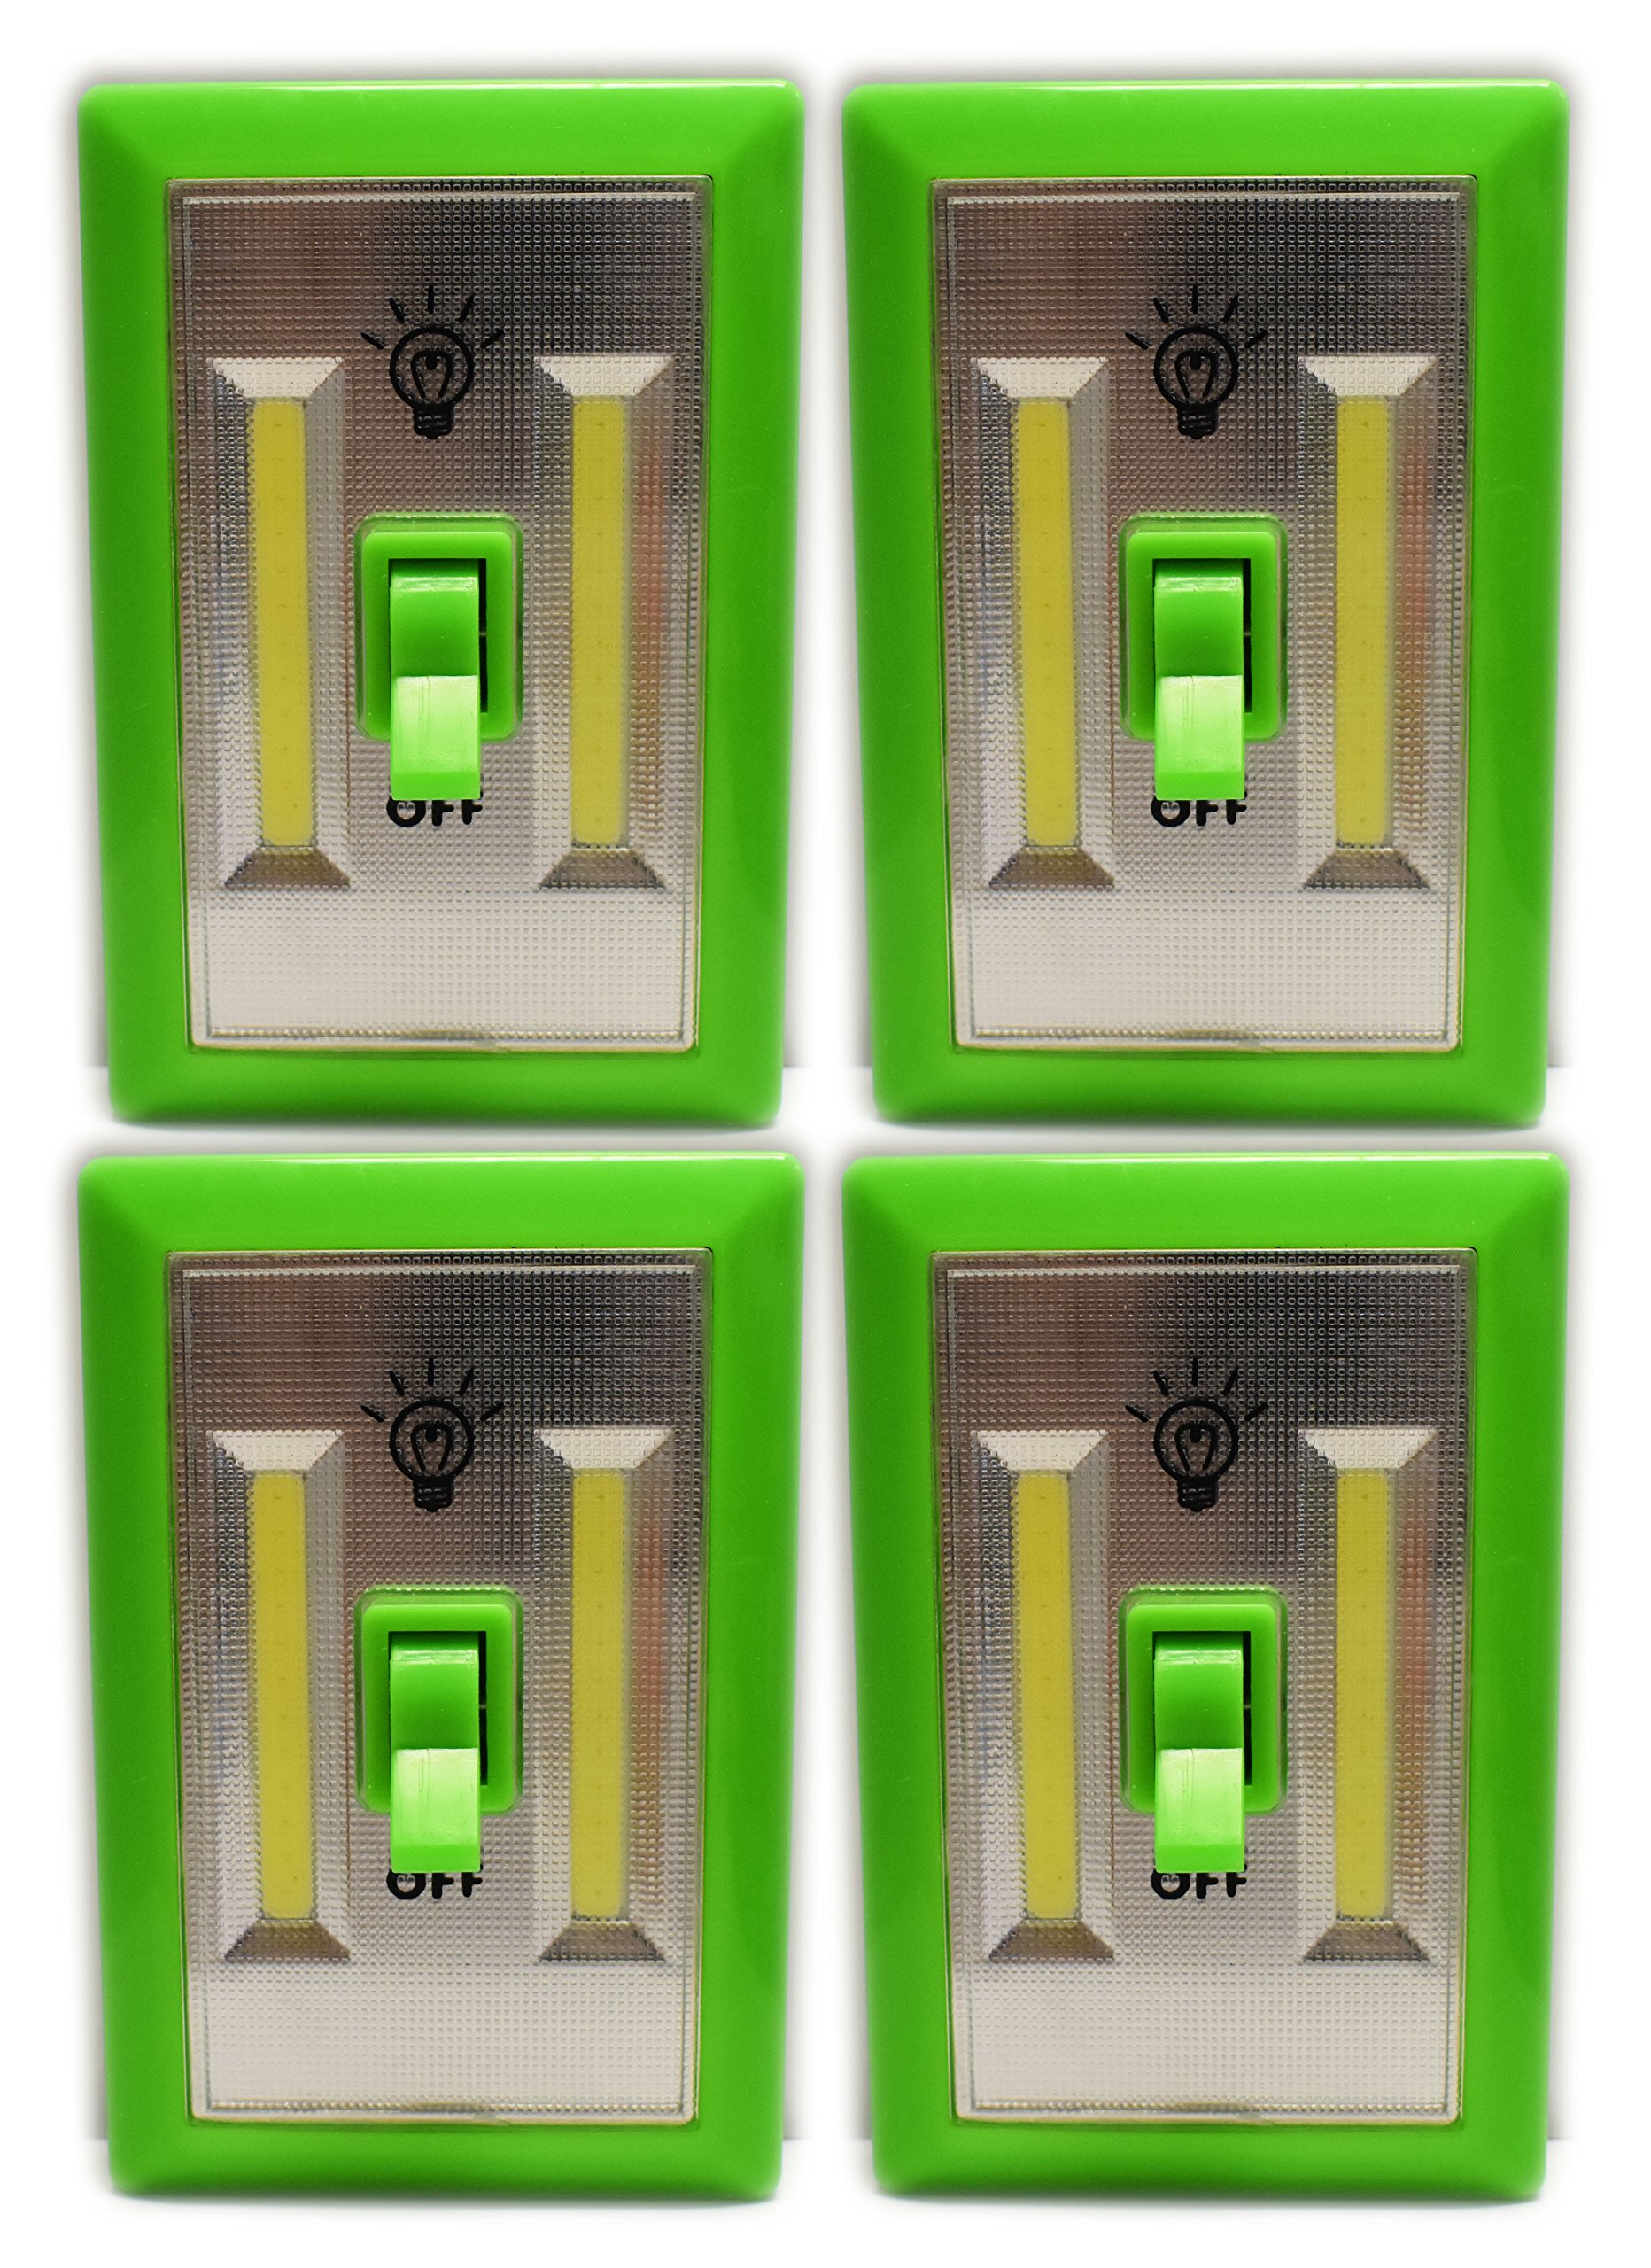 Set of 4 Crazy Colors Cob LED Night Light With Switches - ULTRA BRIGHT - New LED Technology - Super Bright LED Lights - Project Light - Night Light - 200 Lumens (Green 4 Pack)